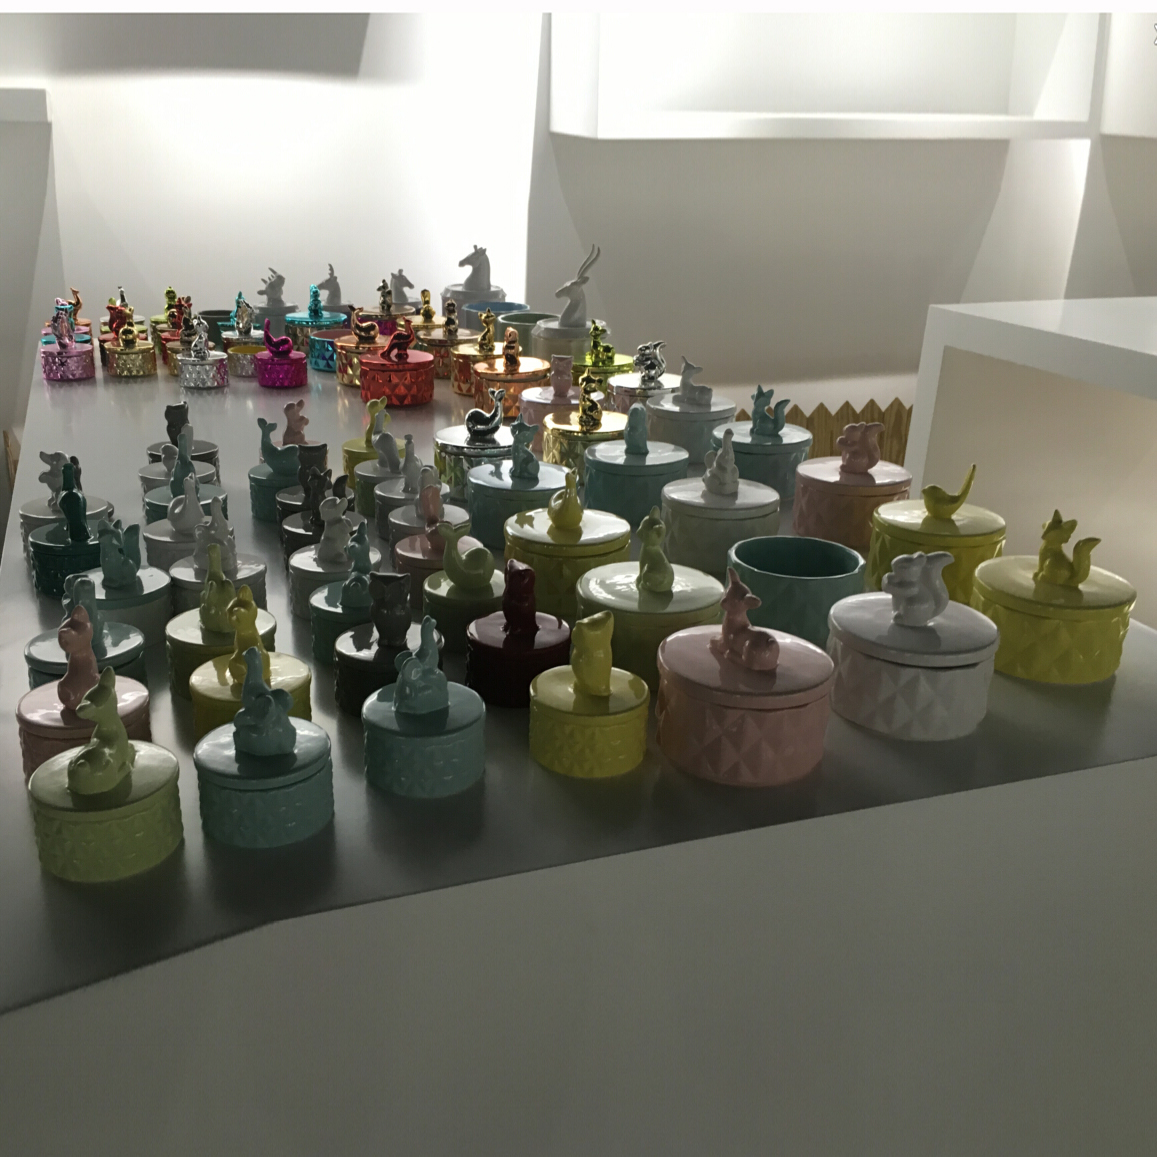 Various of 2017 unique design ceramic candle vessels with animal lids at Sunny Glassware